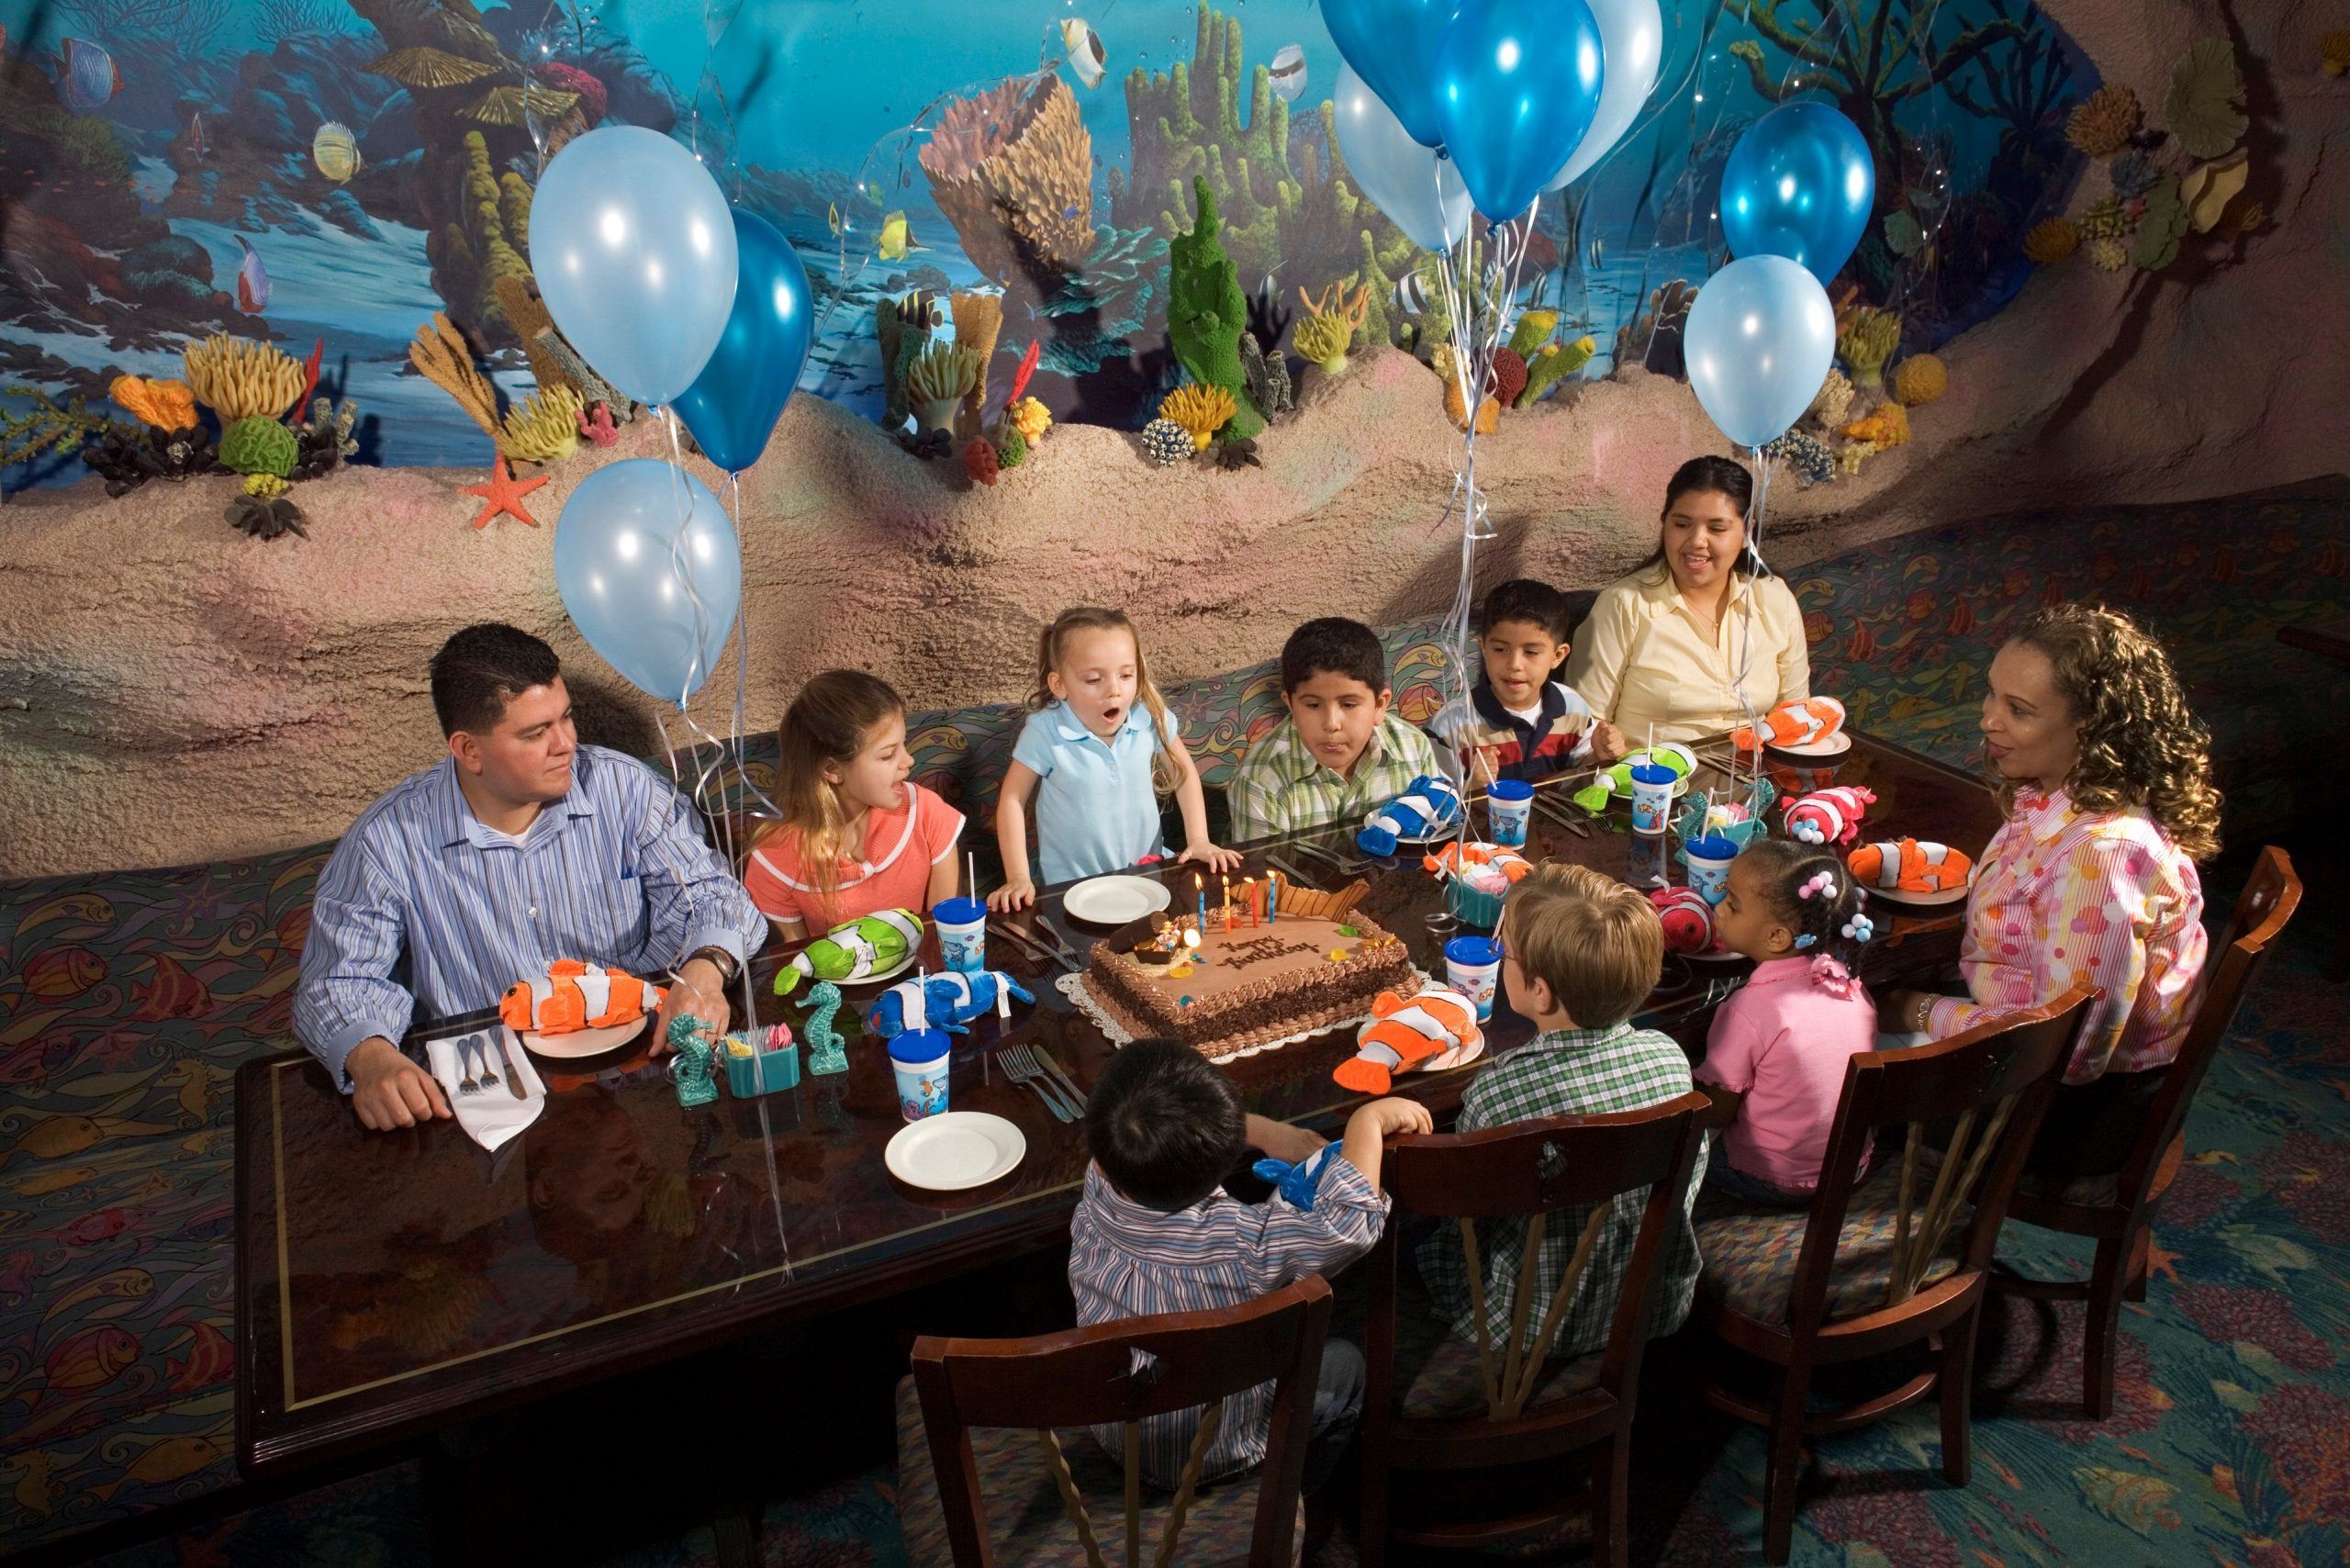 Birthday parties for kids near you.